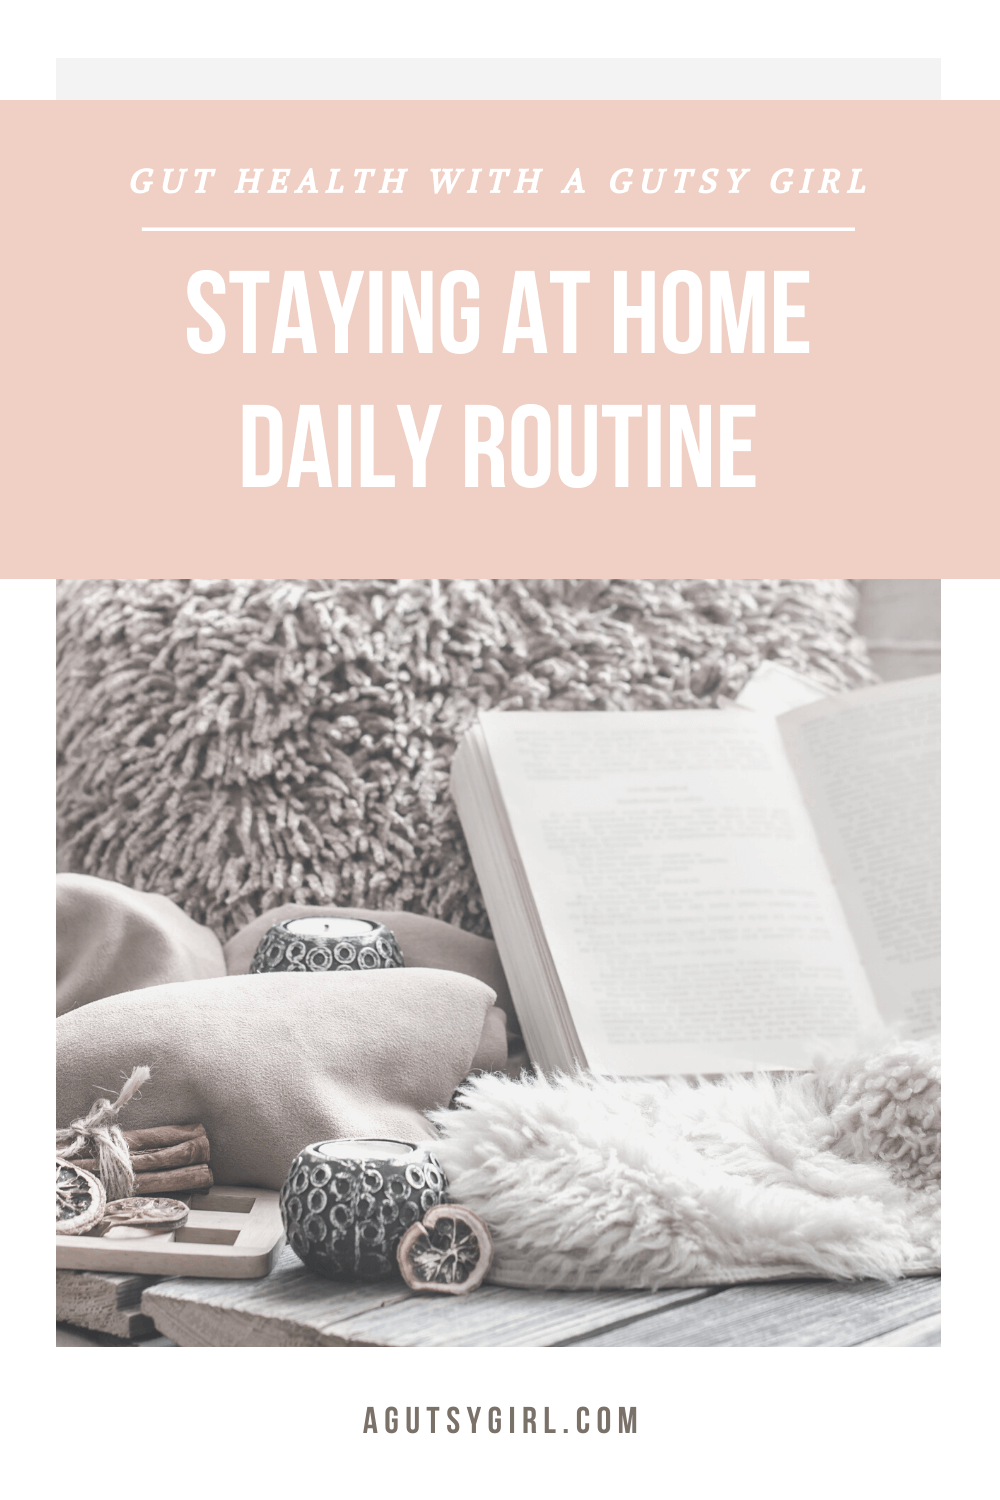 Staying at Home Daily Routine agutsygirl.com #guthealing #guthealth #stayathome #healthyliving